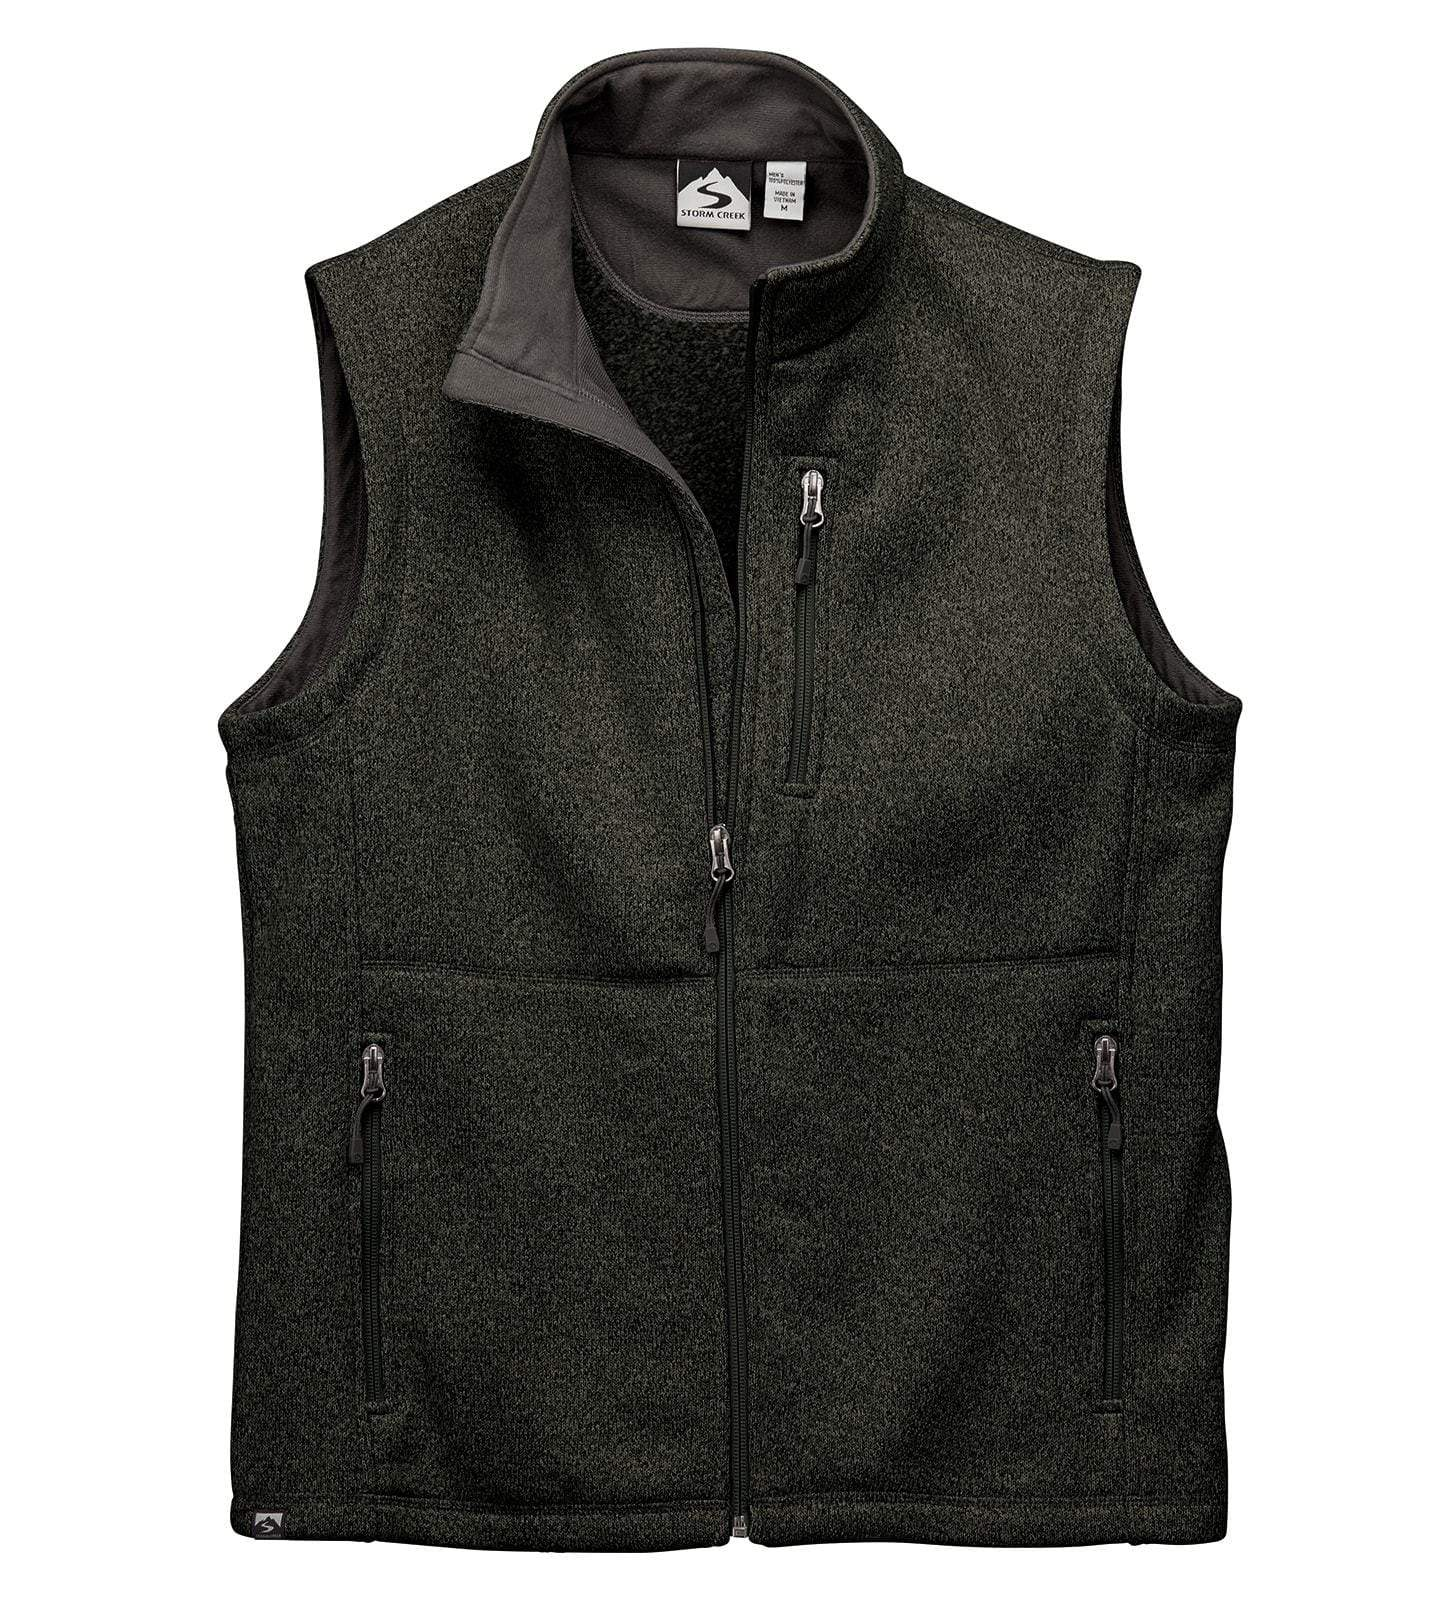 Storm Creek Fleece S / Cinder Storm Creek - MEN'S SWEATERFLEECE VEST